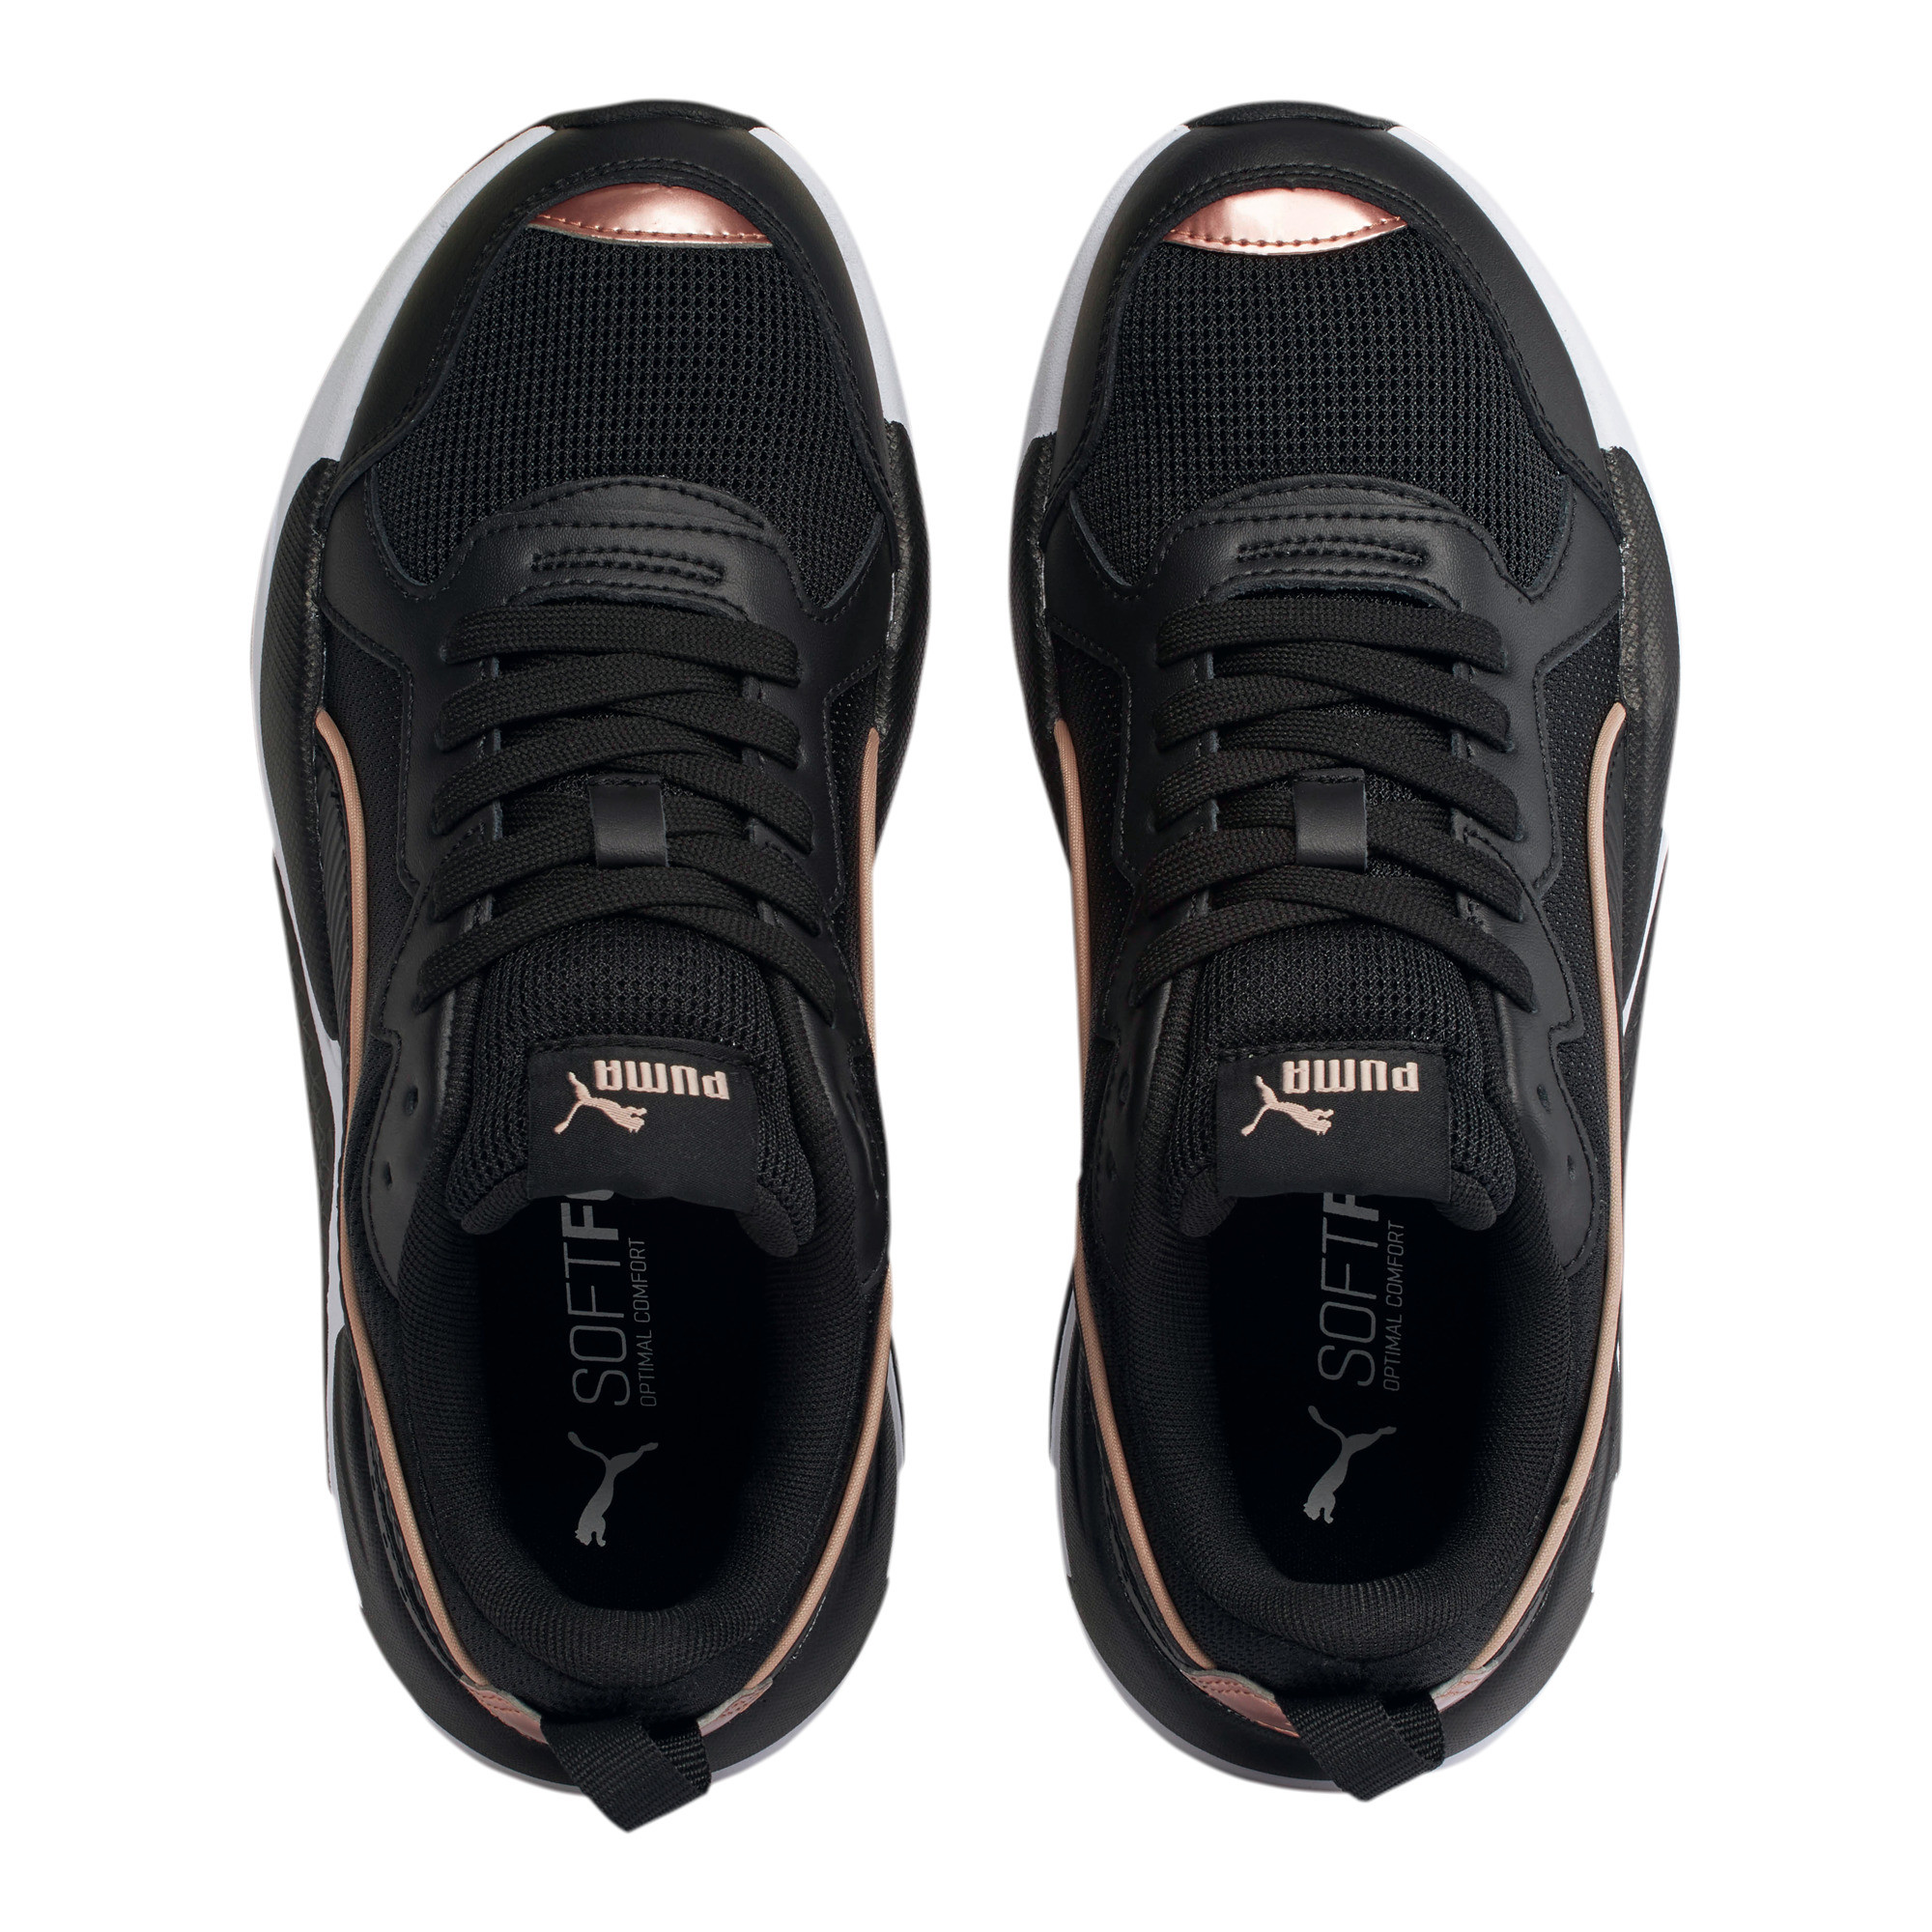 PUMA-X-RAY-Metallic-Shine-Women-039-s-Sneakers-Women-Shoe-Basics thumbnail 7